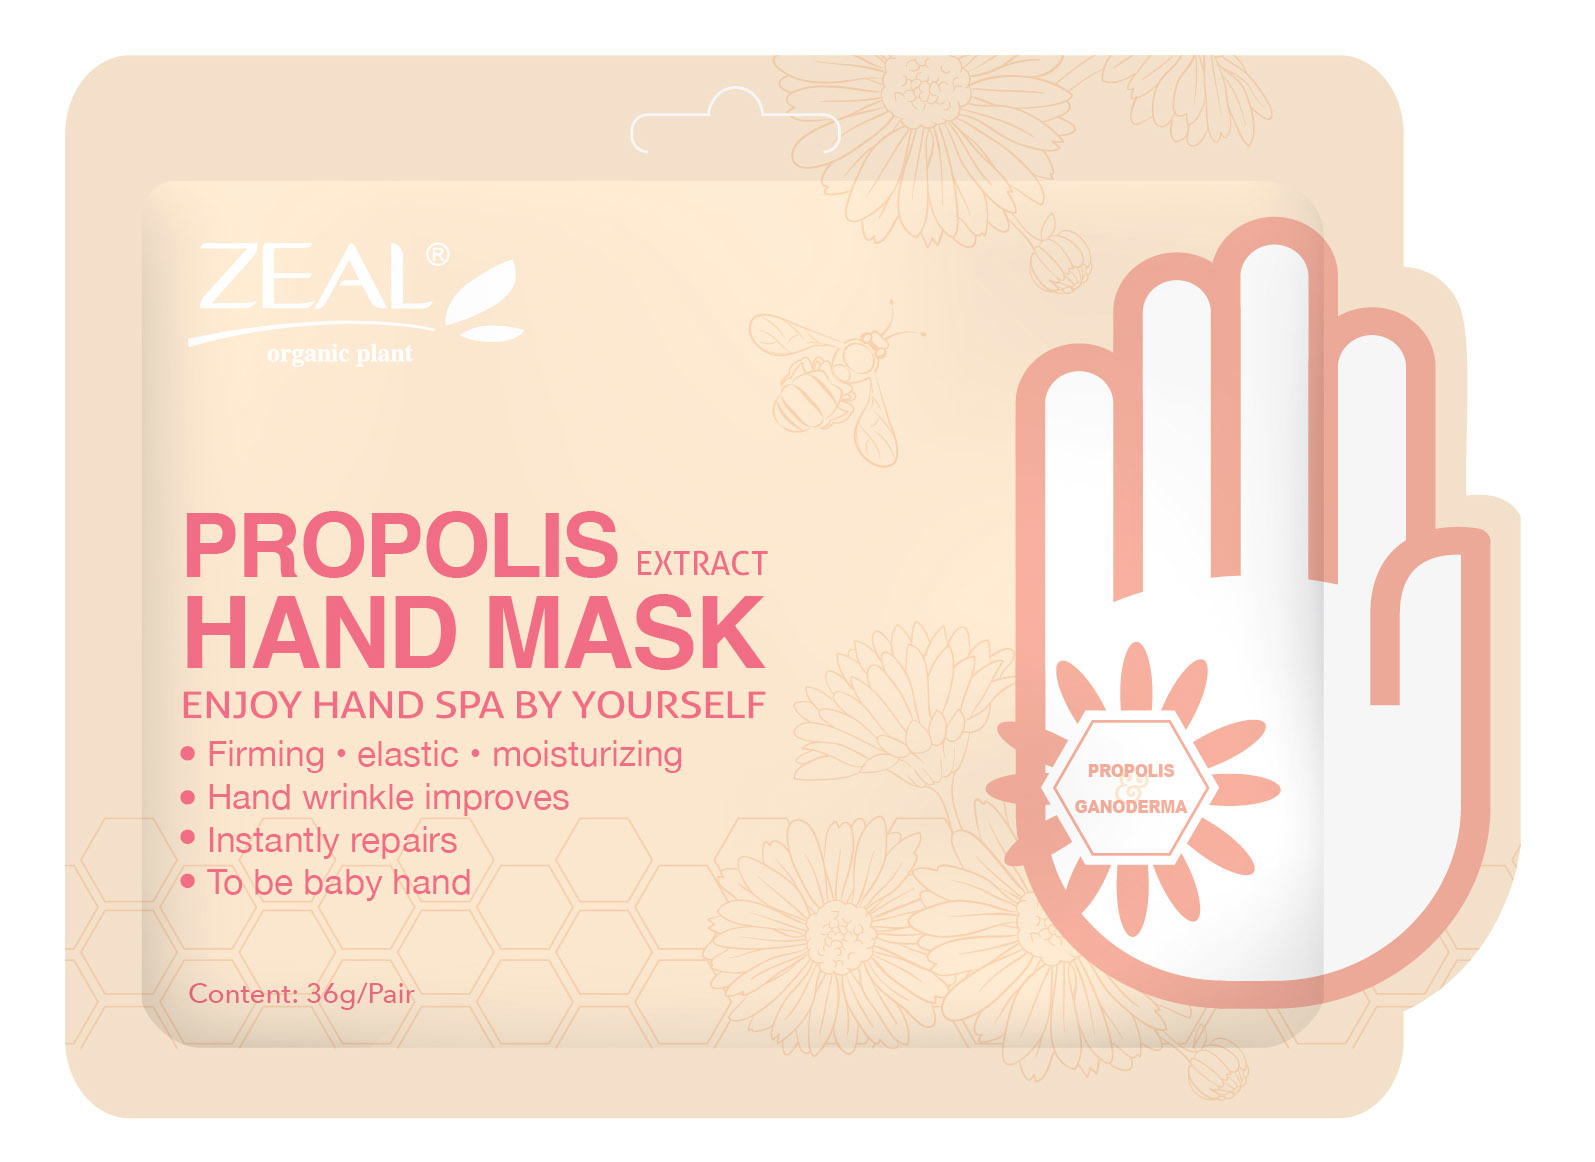 Zeal Propolis & Pearl Whitening & Brighten Foot Mask Cosmetic pictures & photos